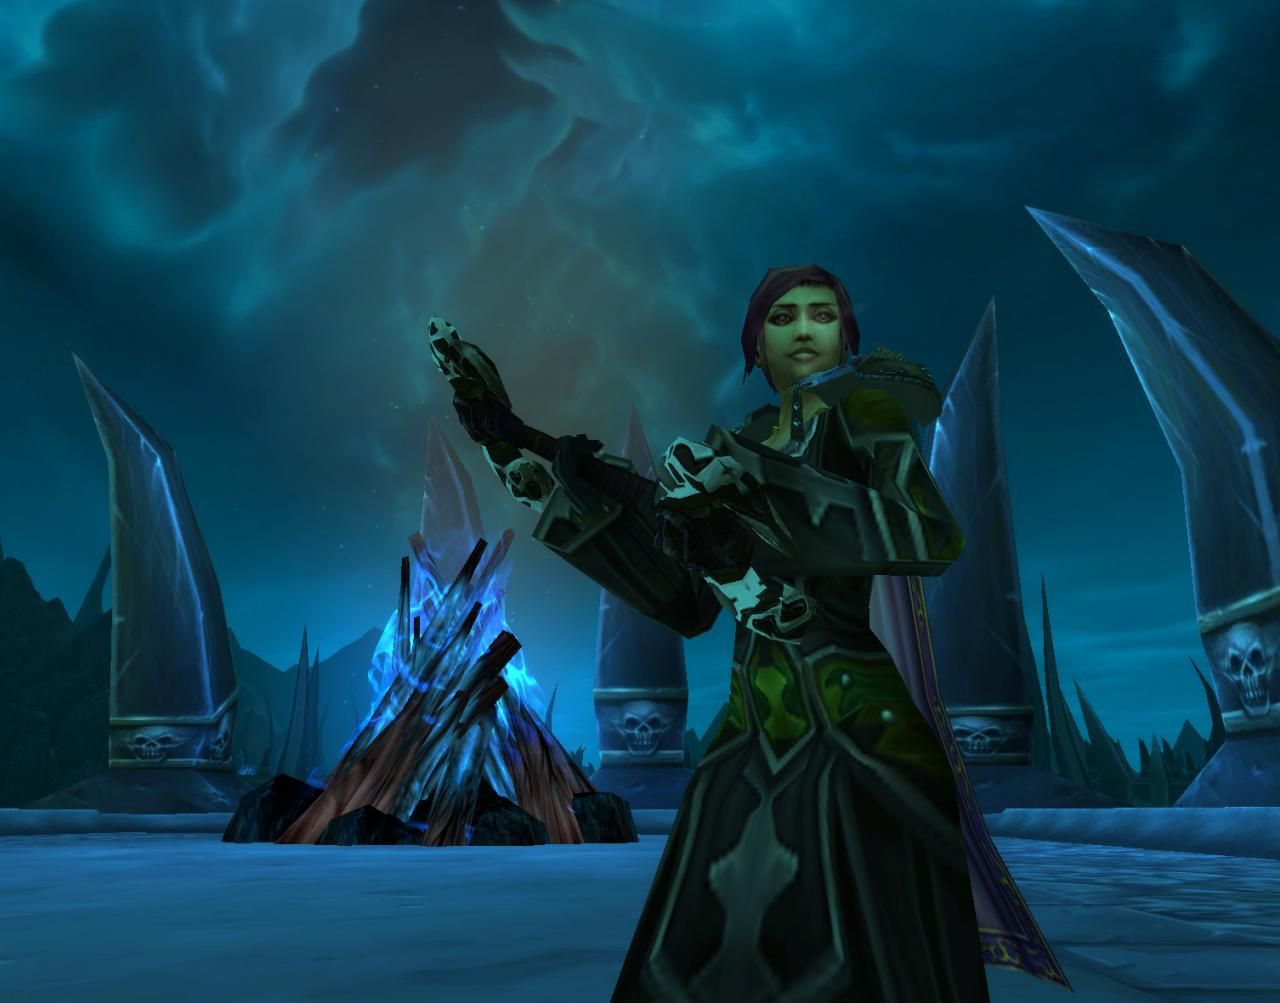 [20/08/08] World of Warcraft: Wrath of the Lich King